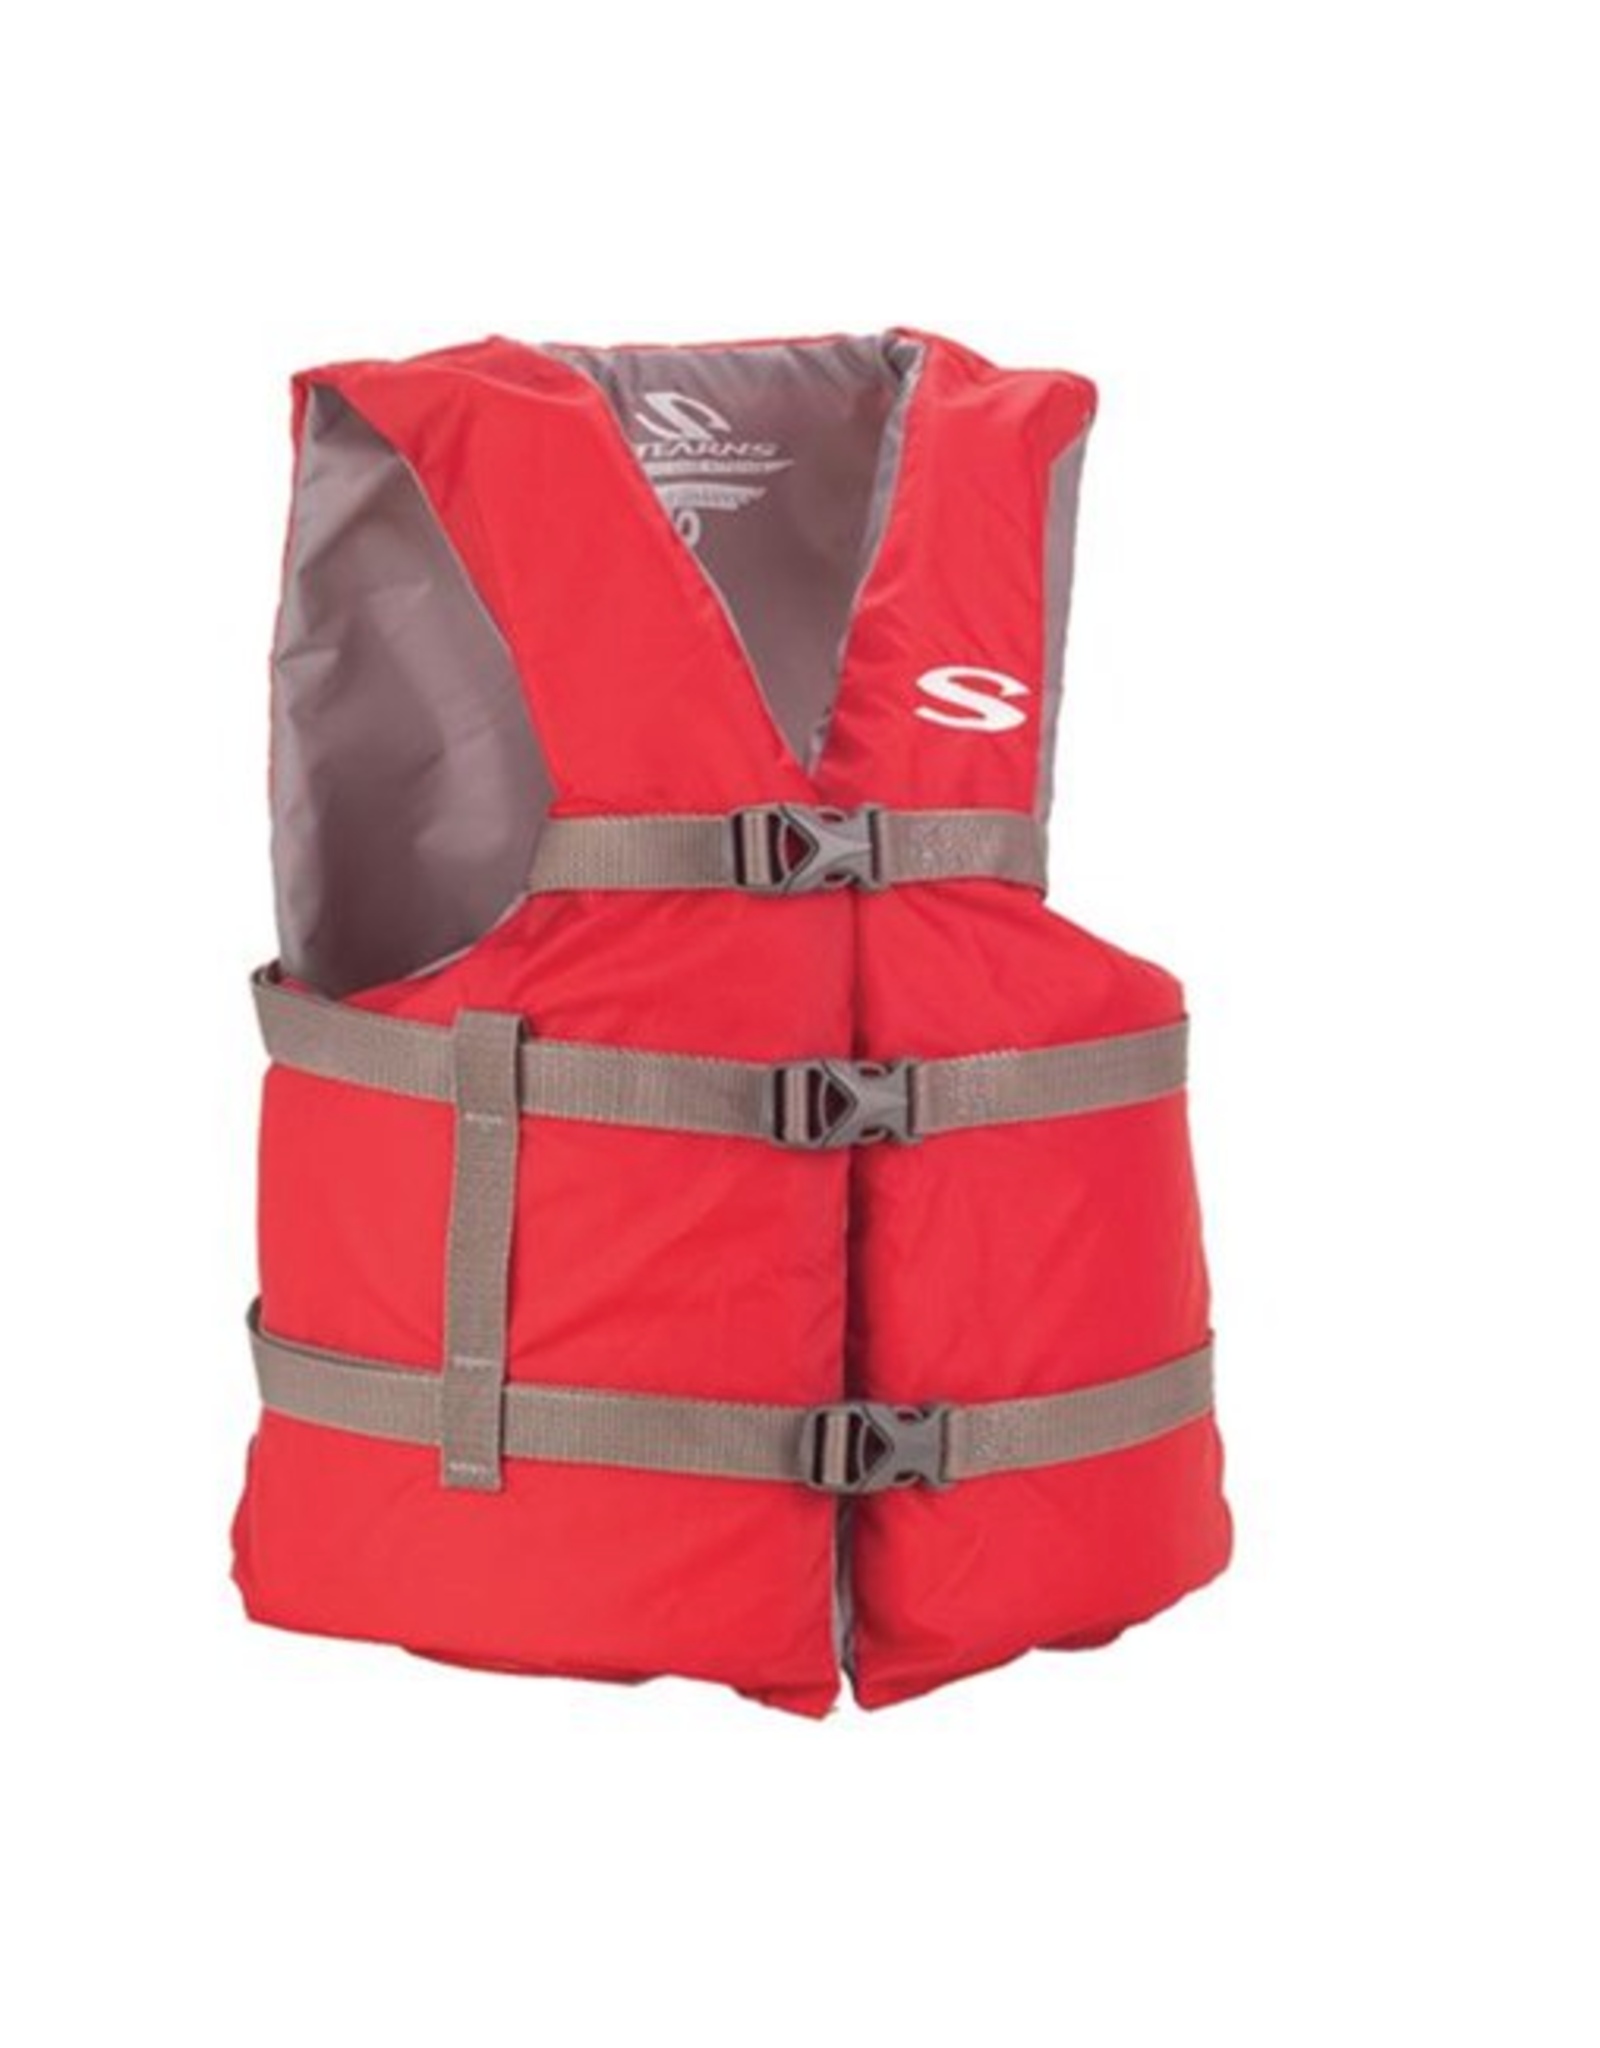 Stearns Stearns Youth PFD (life jacket) - RED